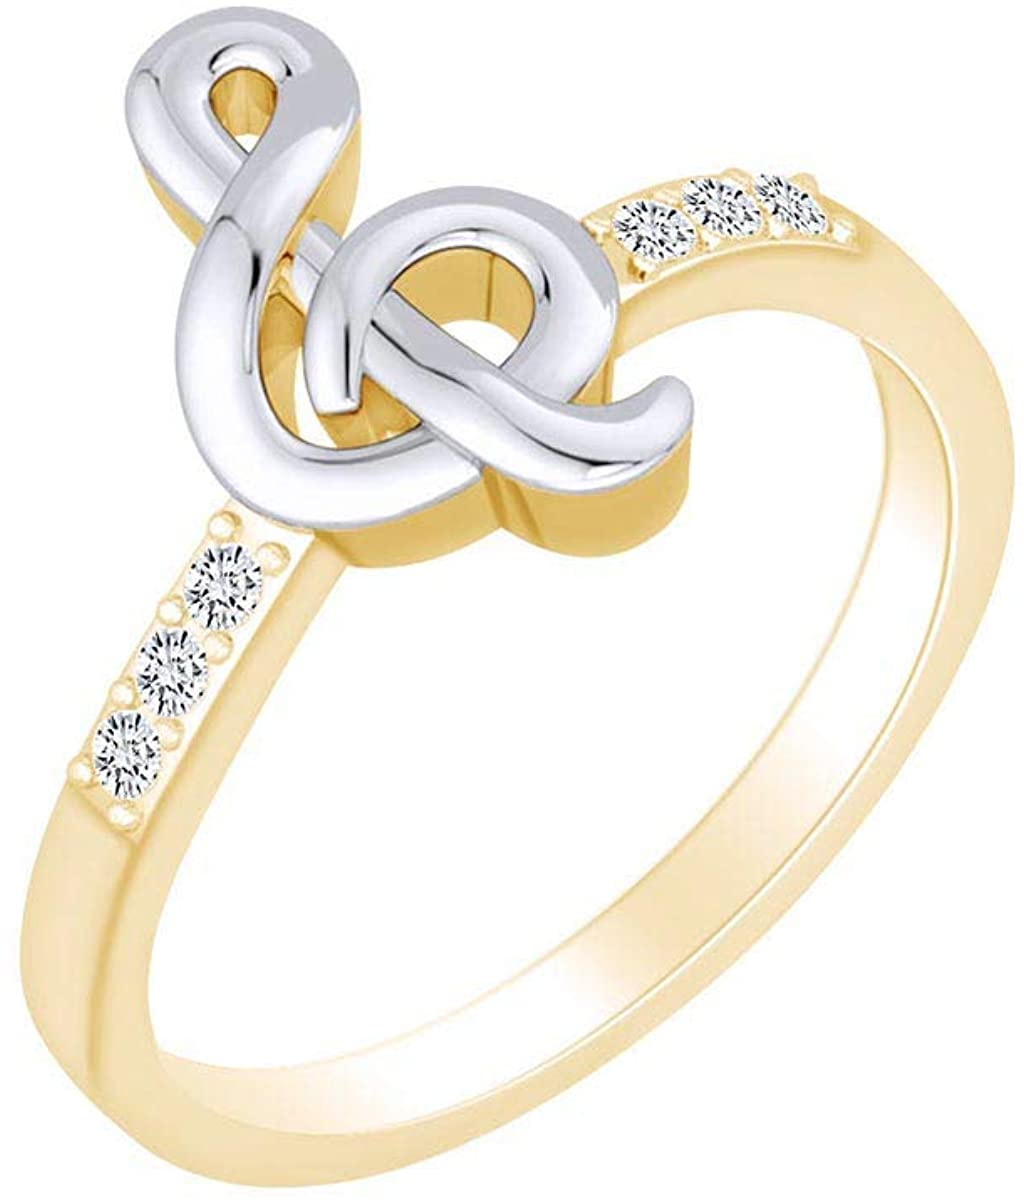 0.11 Carat (Cttw) Round White Natural Diamond Musical Note Two Tone Ring